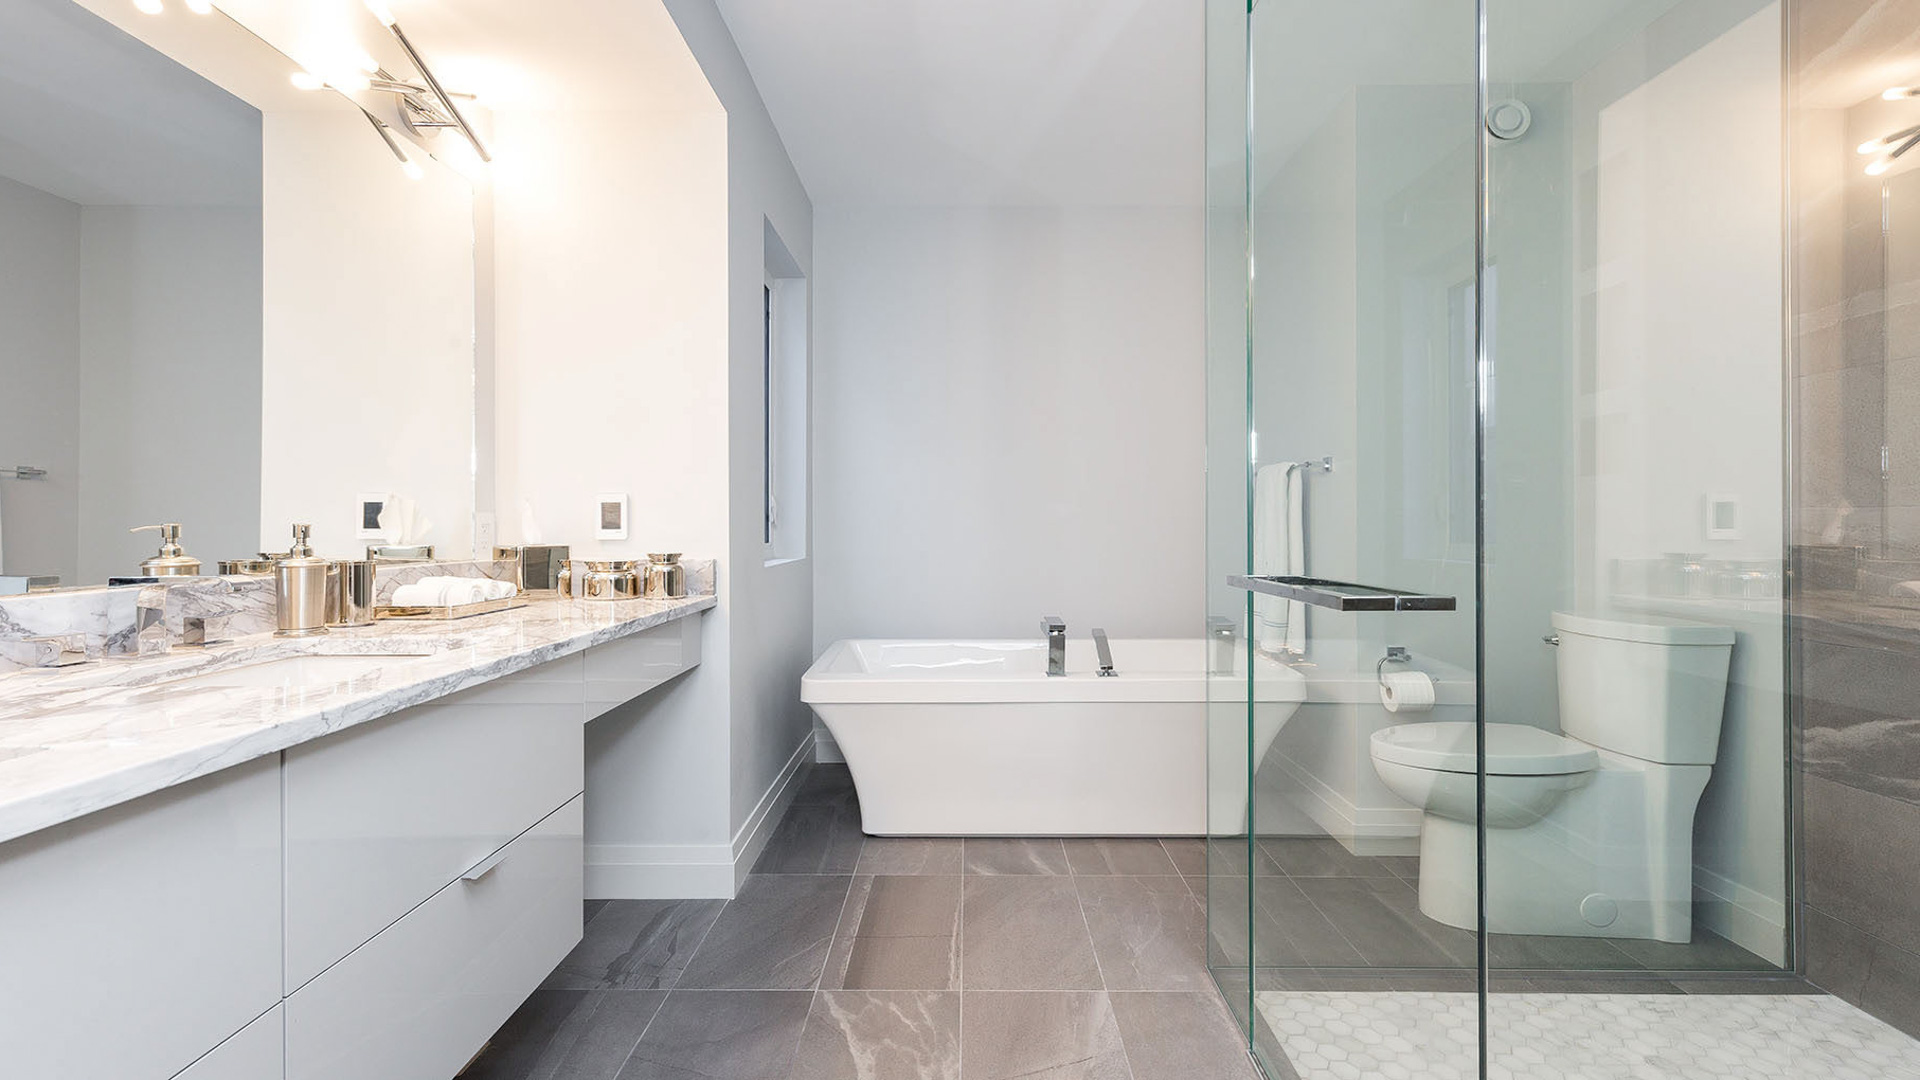 4 Easy and affordable bathroom design trends to rejuvenate your space